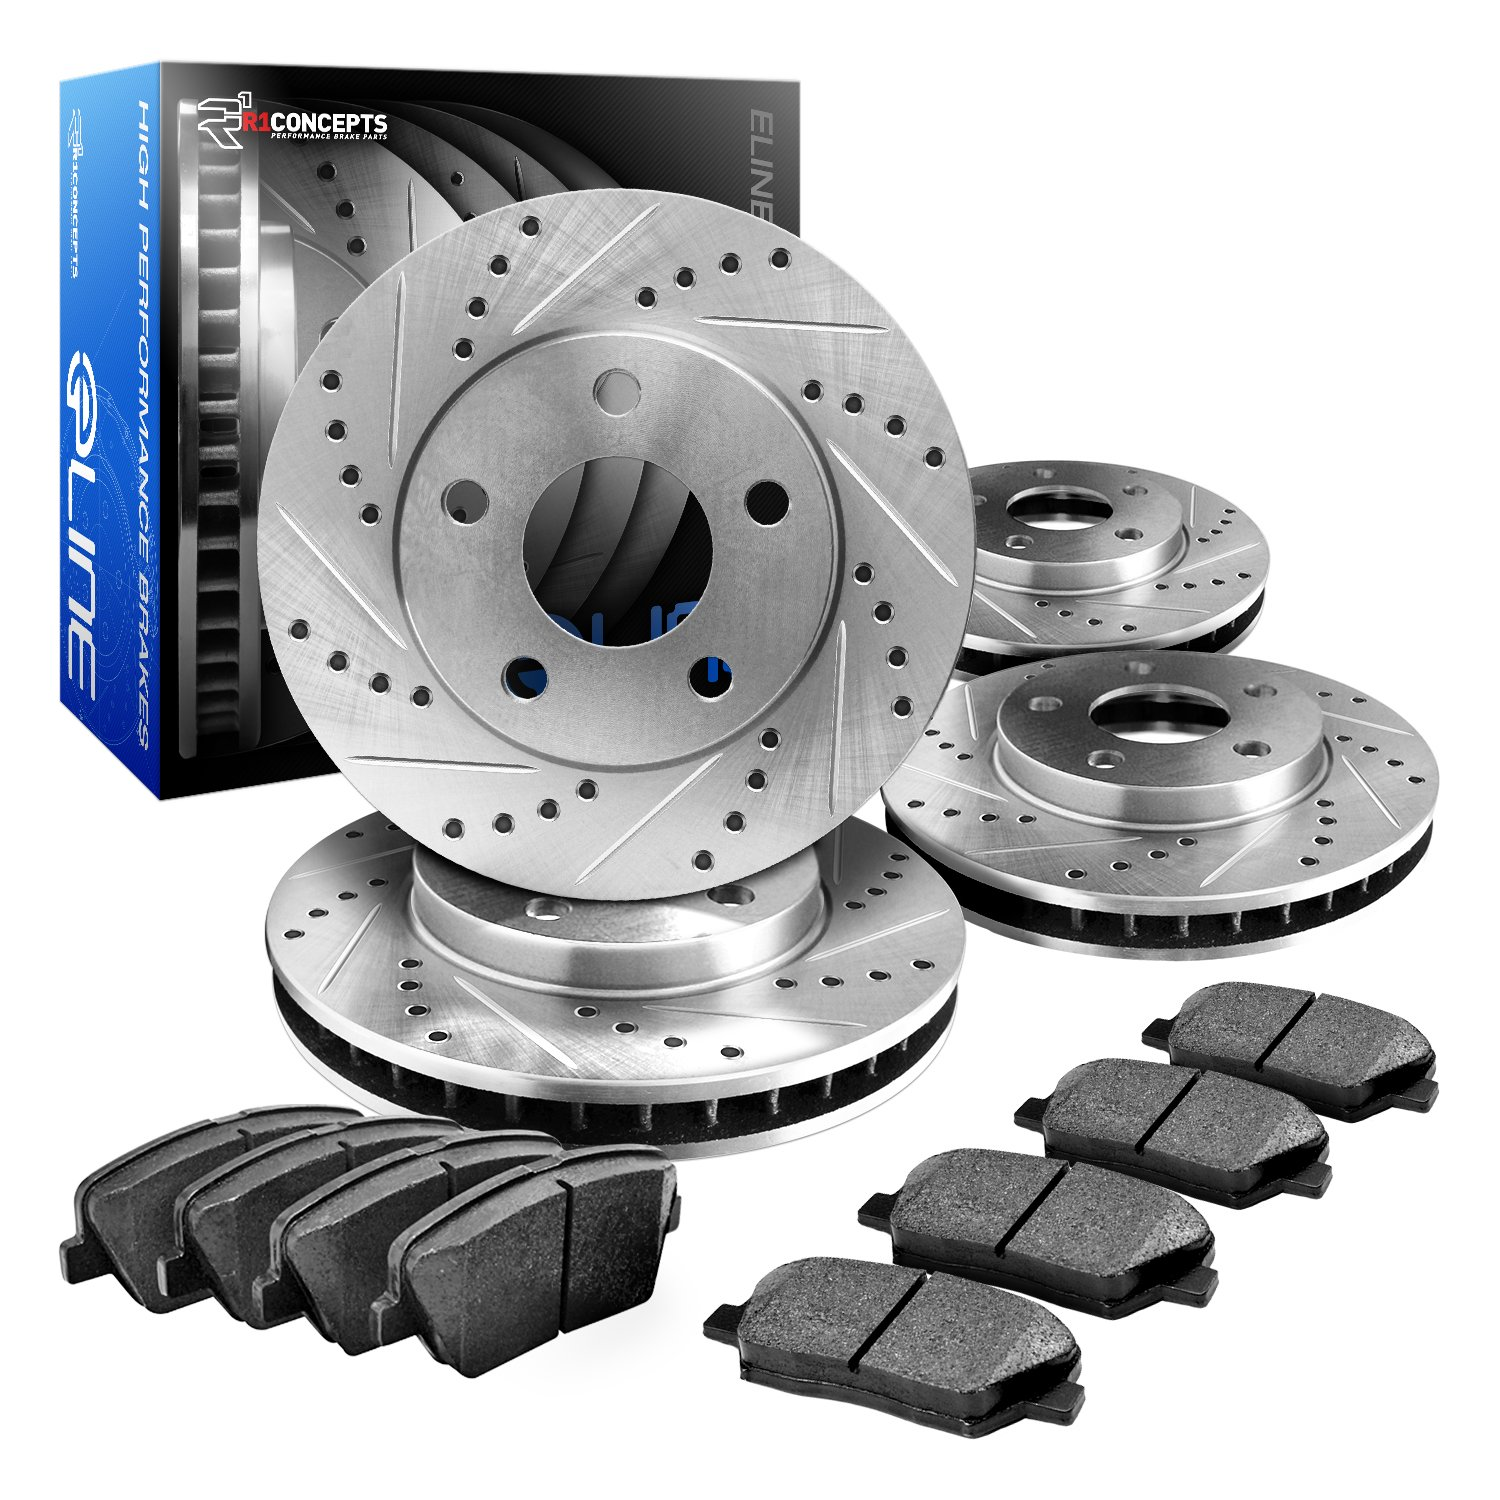 Front and Rear R1 Concepts CEDS10565 Eline Series Cross-Drilled Slotted Rotors And Ceramic Pads Kit